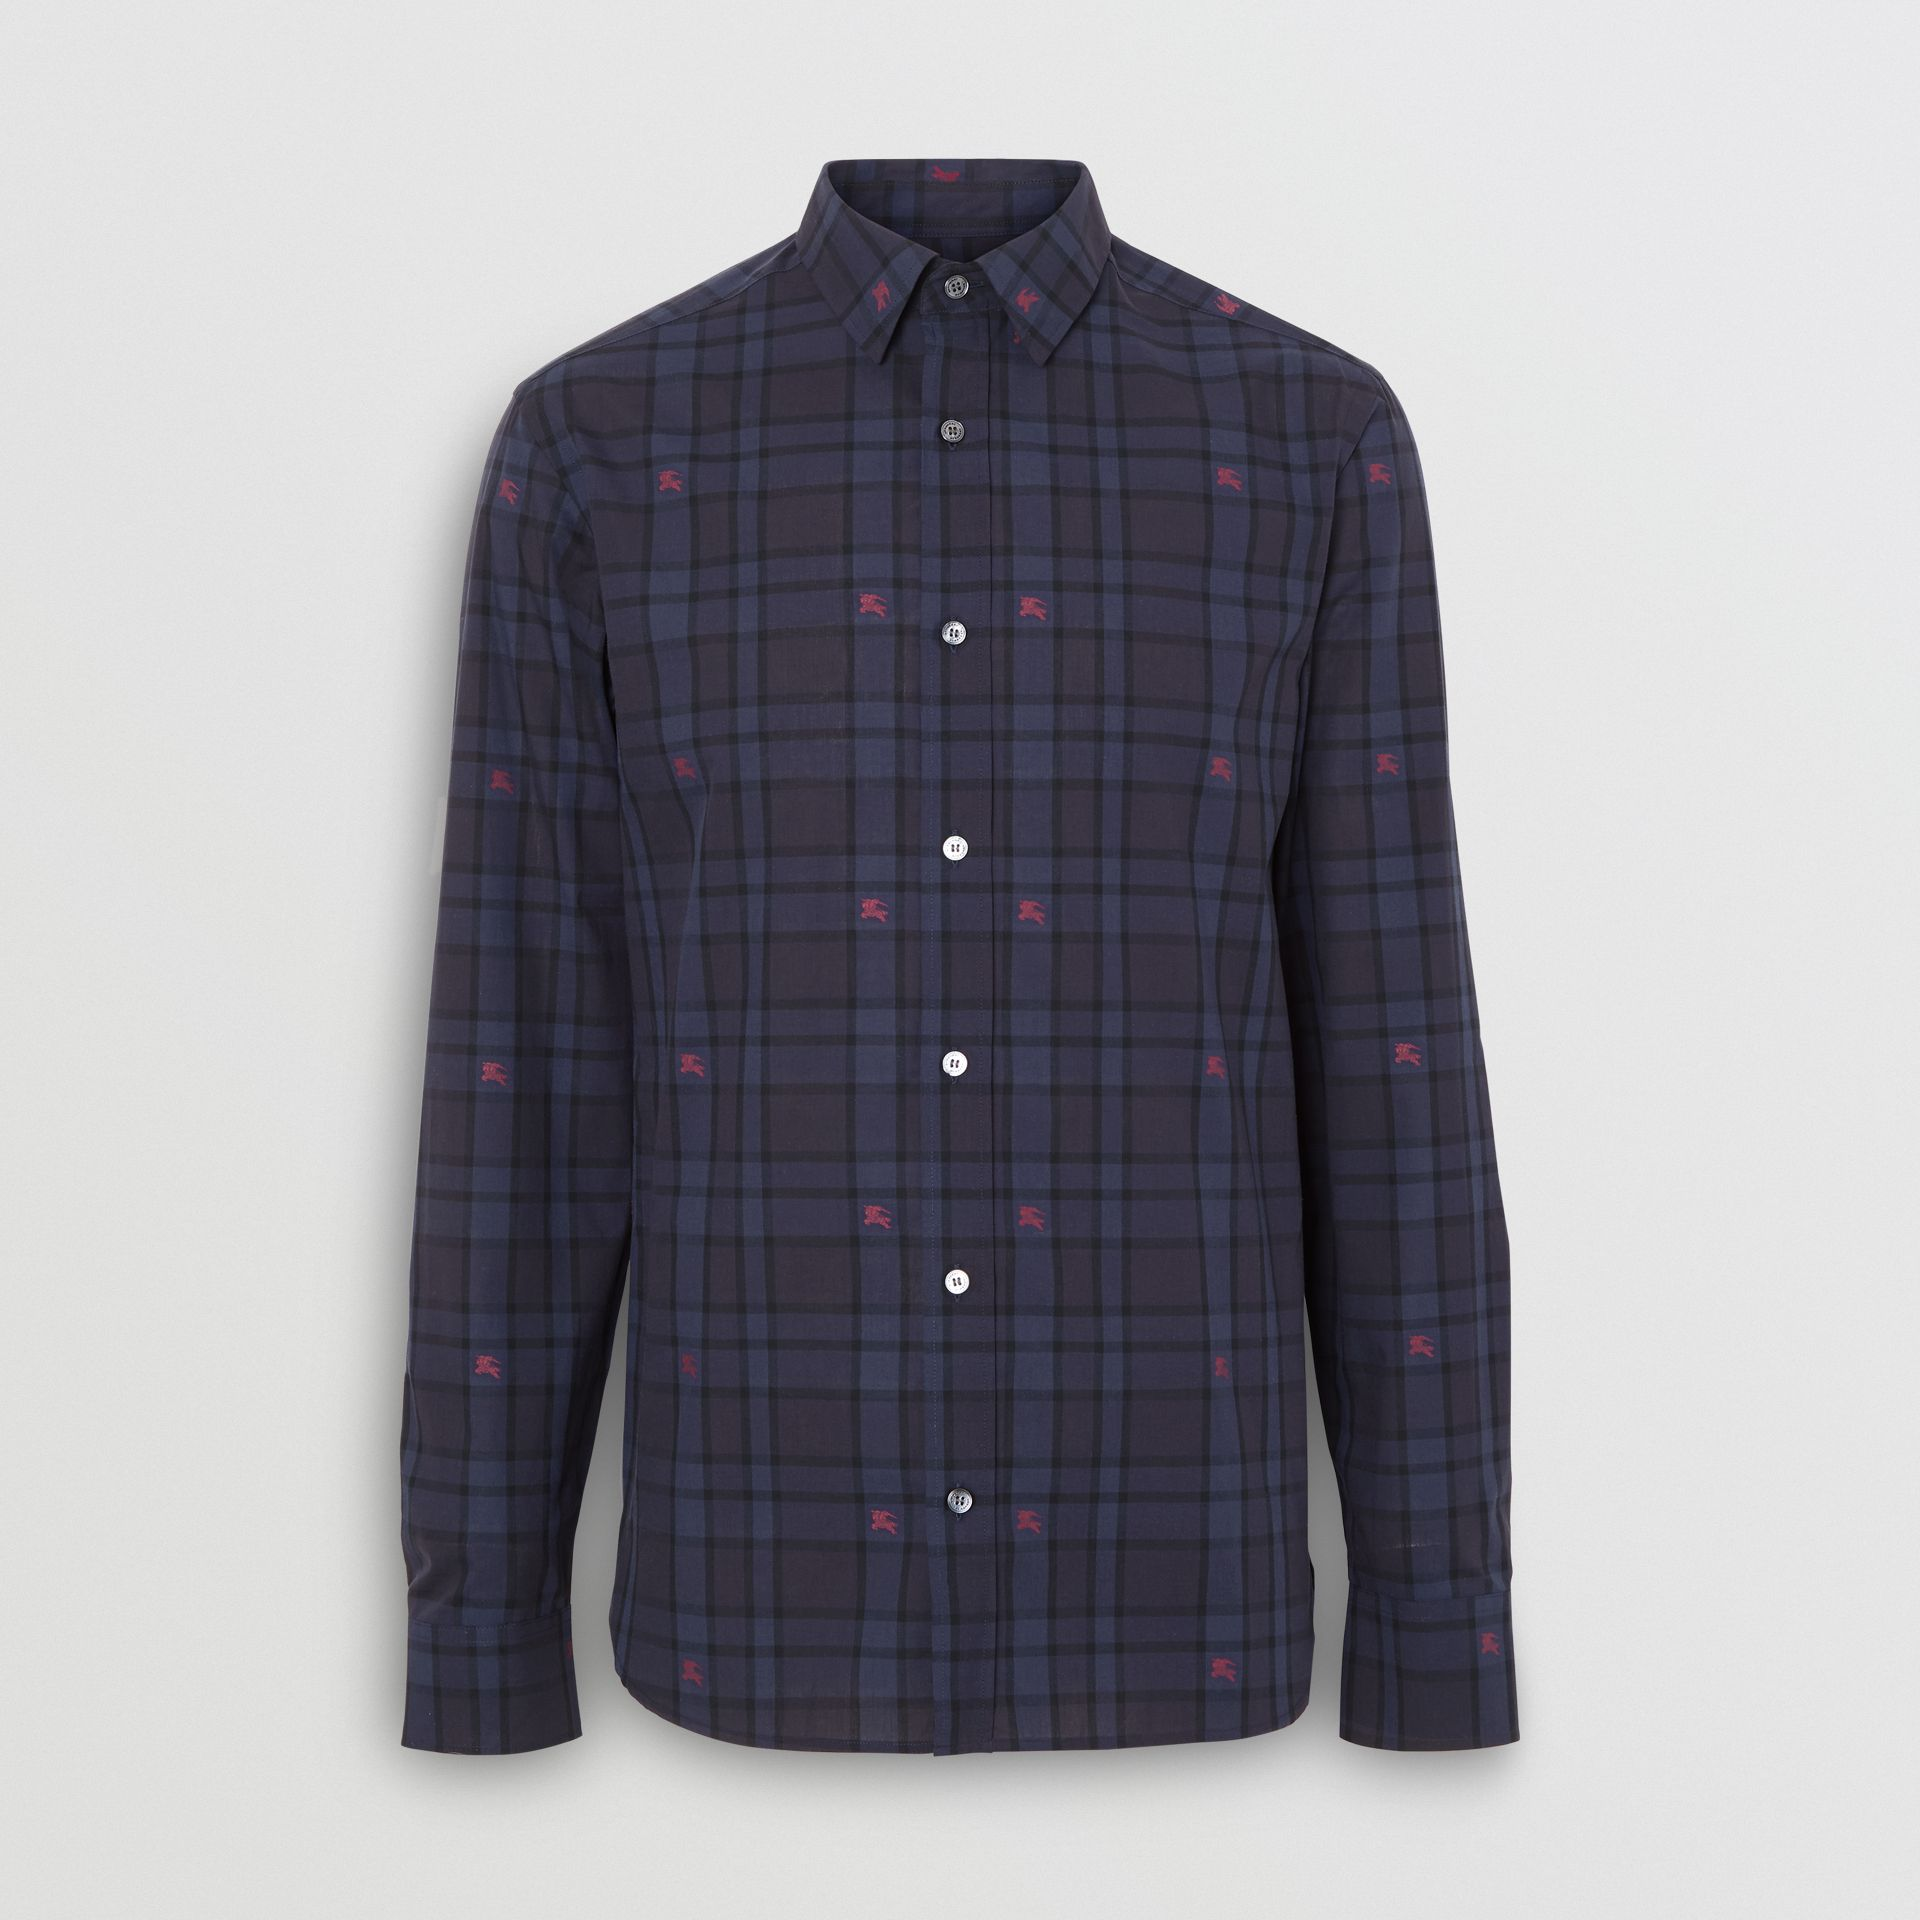 Equestrian Knight Check Cotton Shirt in Dark Indigo - Men | Burberry United States - gallery image 3